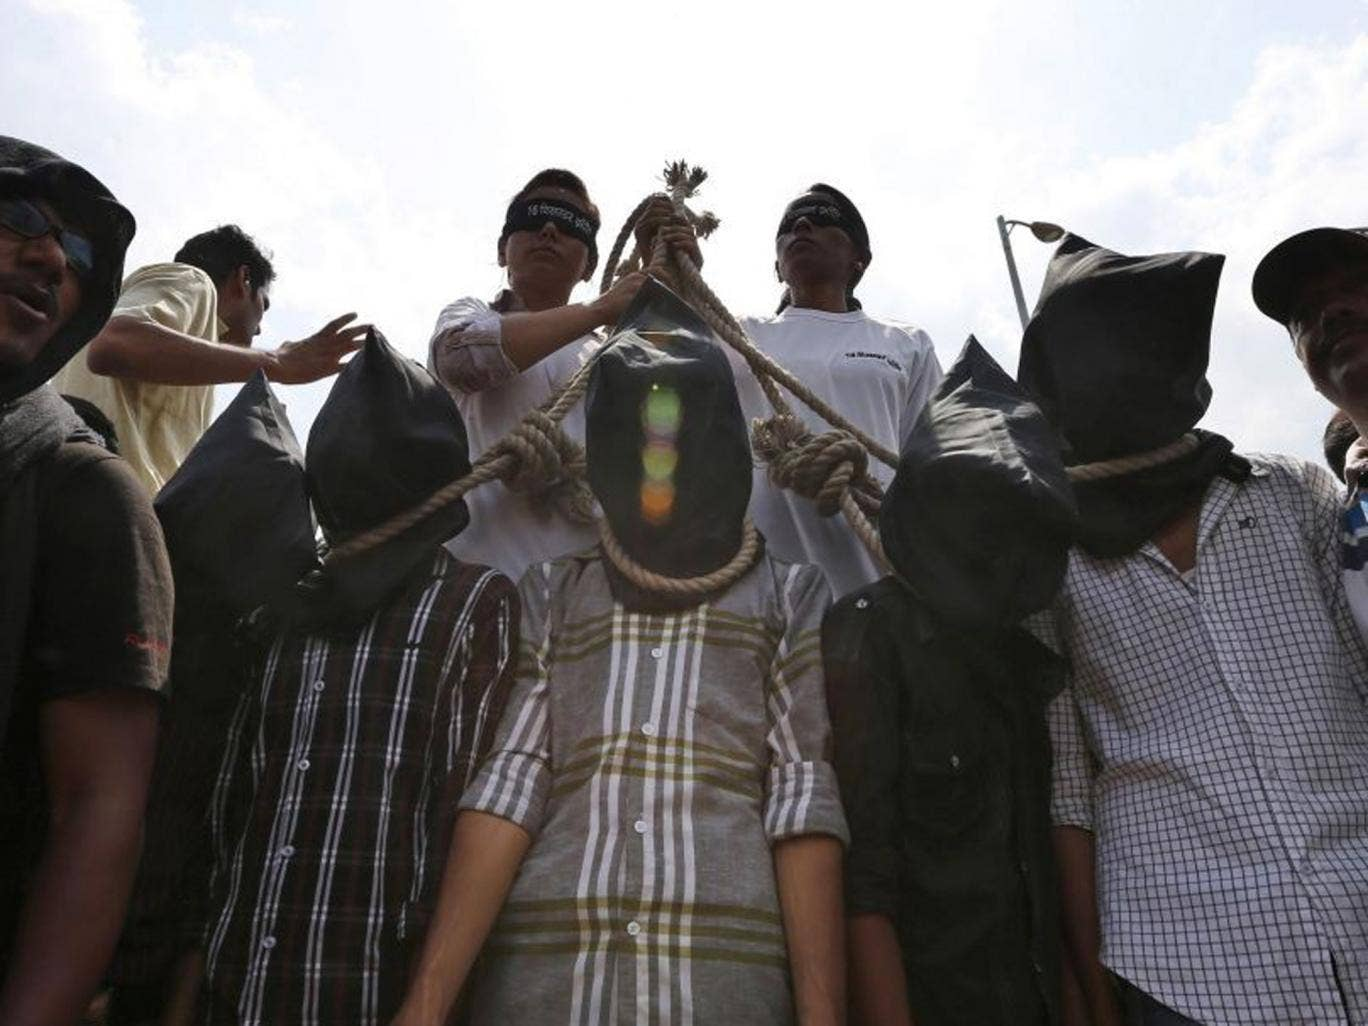 Indian protesters stage a mock hanging scene to demand death sentence for the four men found guilty of the gang-rape in Delhi